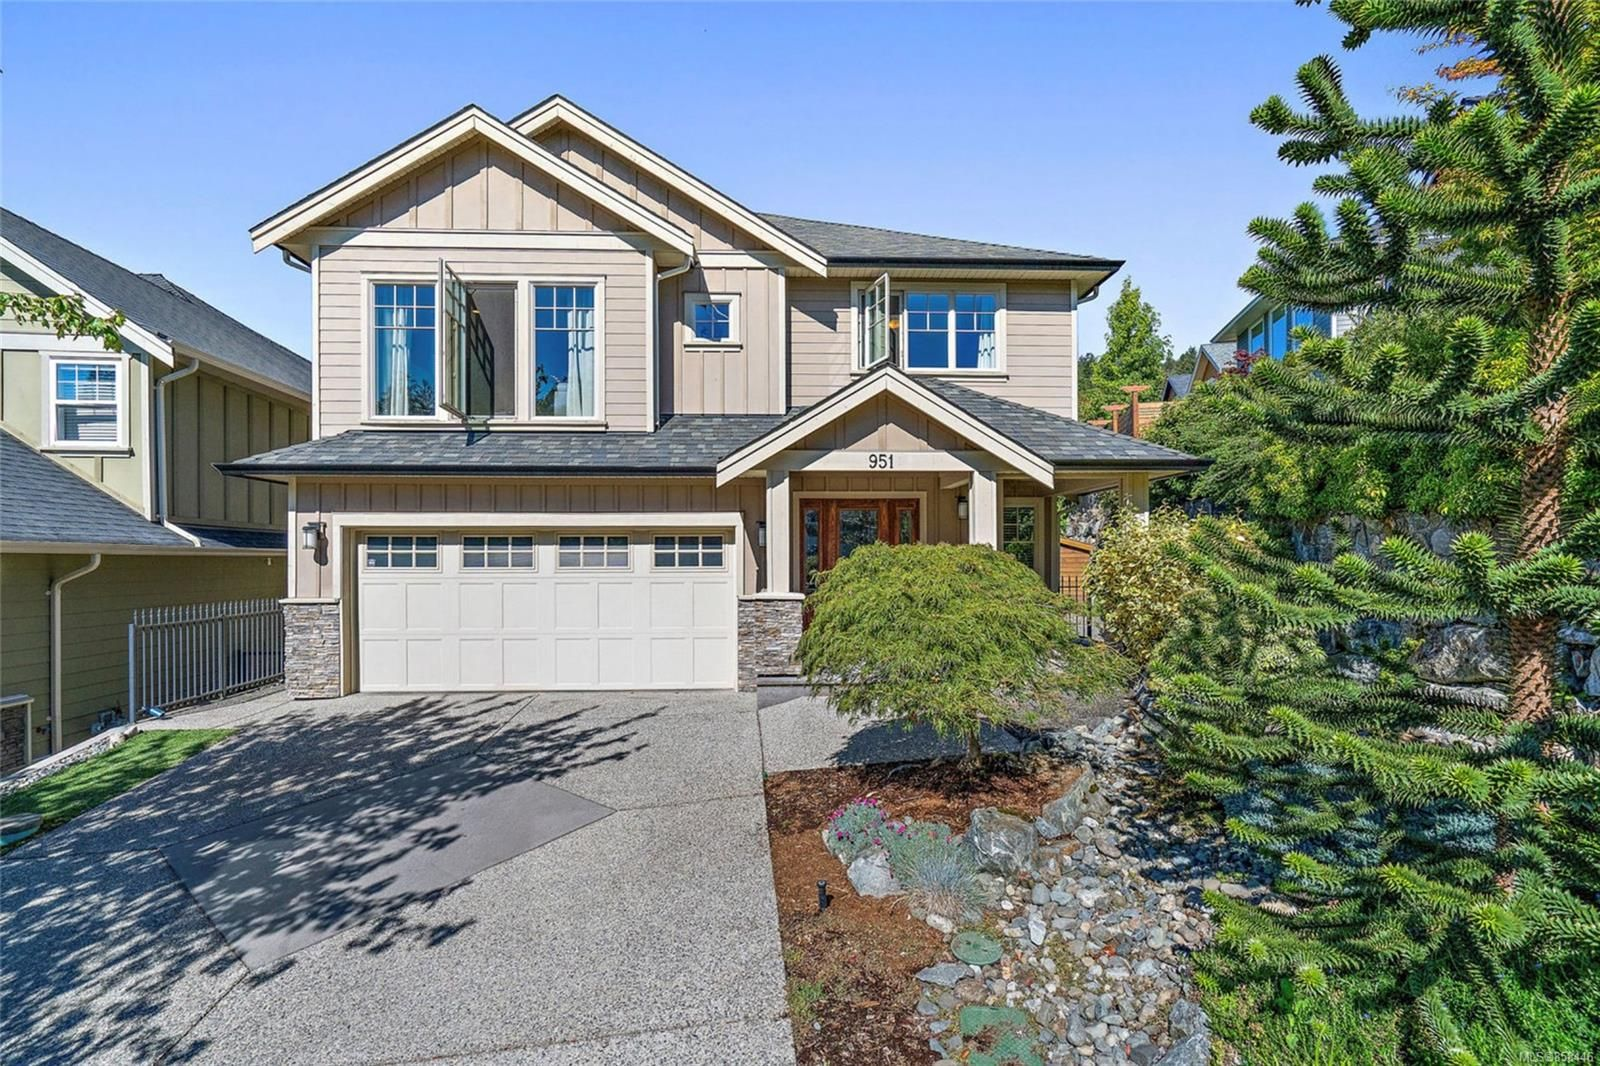 Main Photo: 951 Gade Rd in : La Florence Lake House for sale (Langford)  : MLS®# 858446